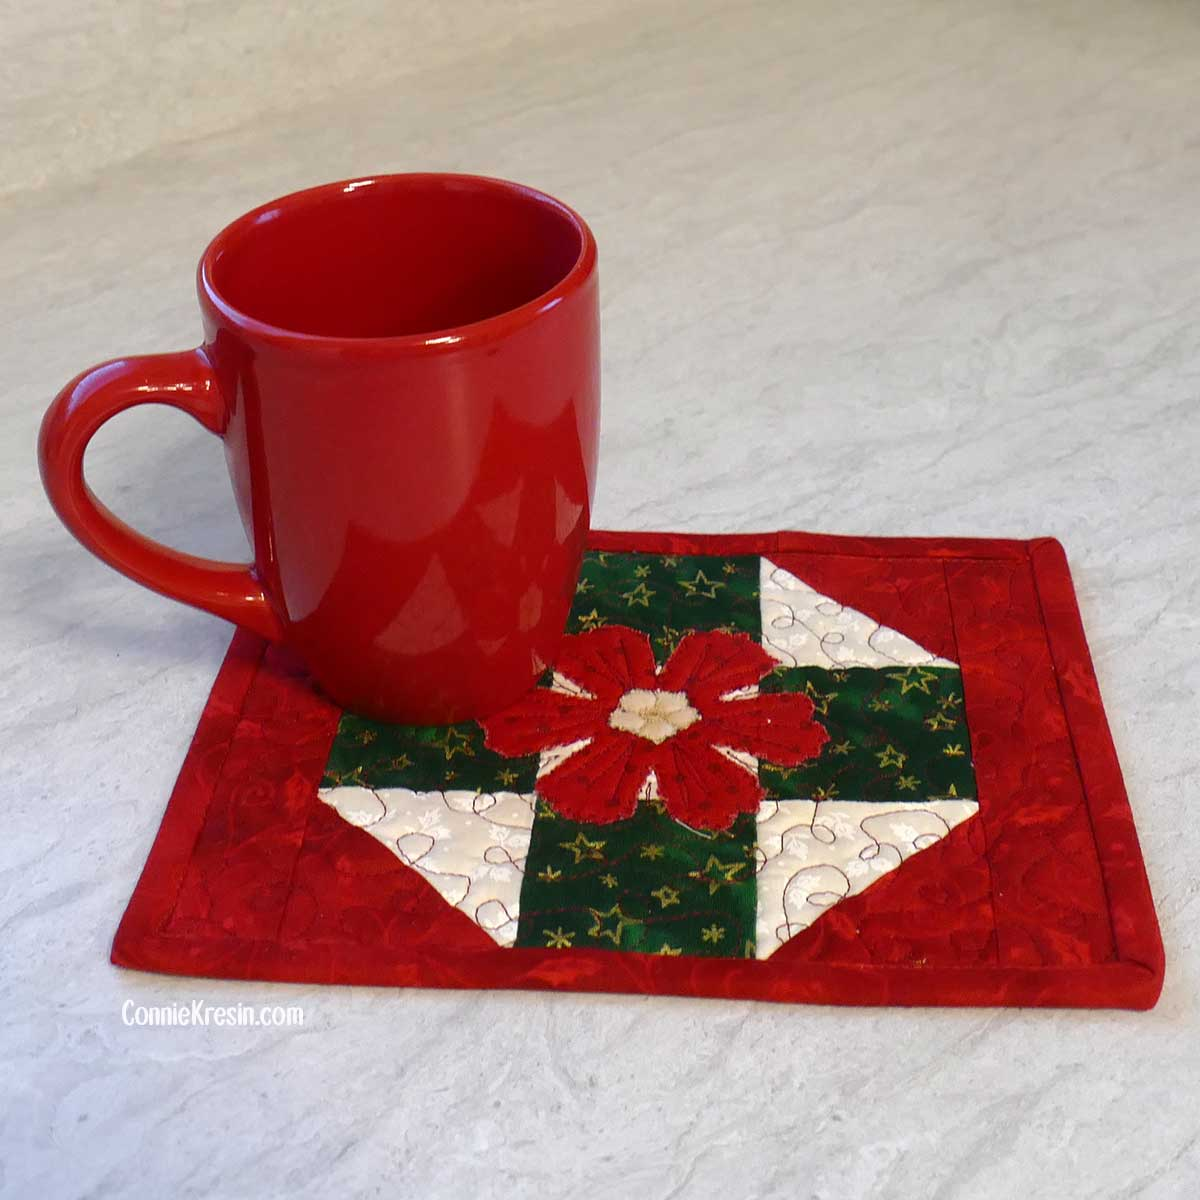 Red coffee cup on the Christmas mug rug